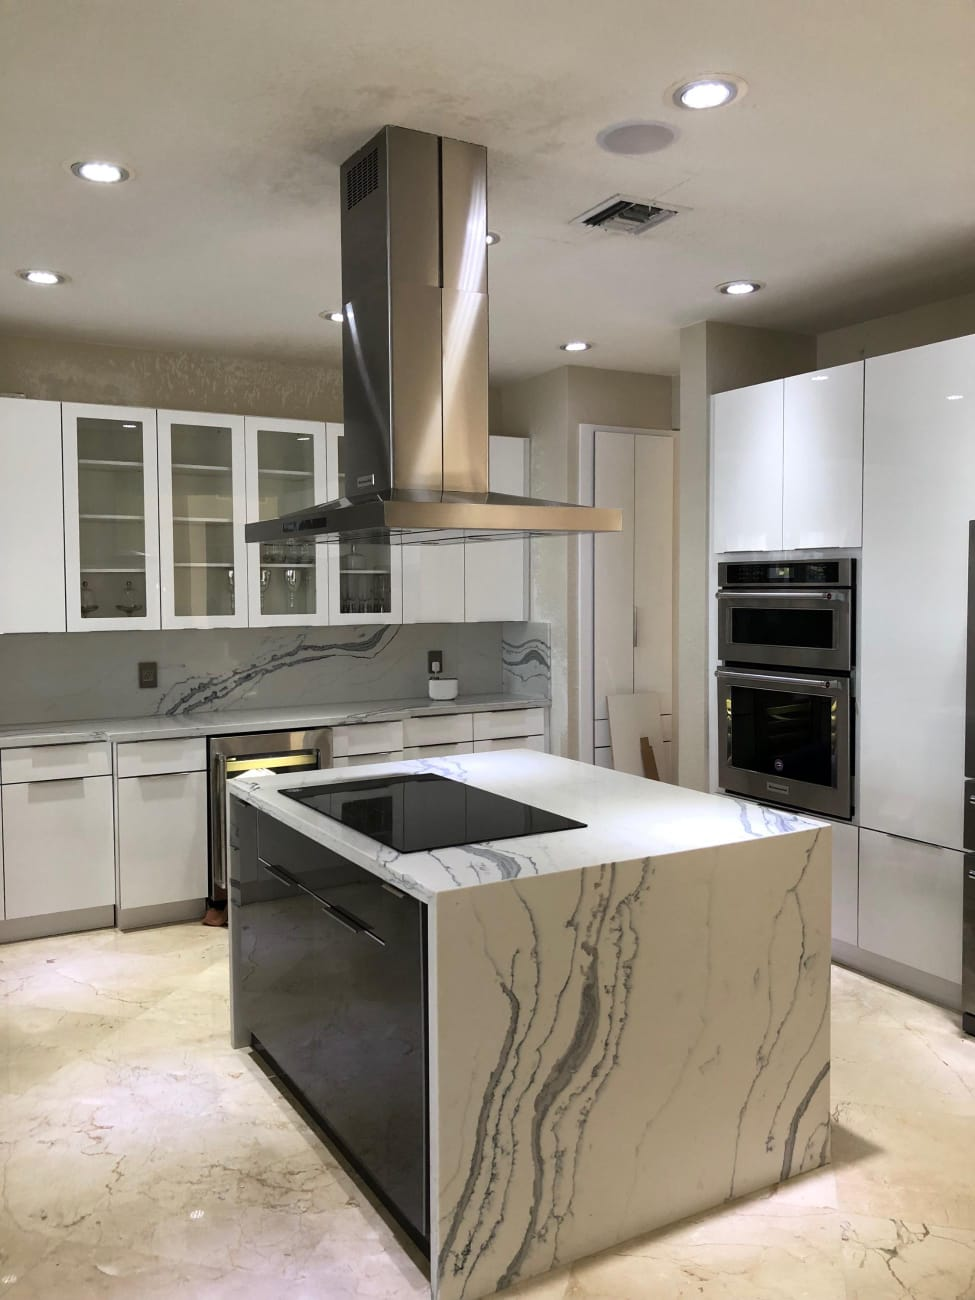 Home Farias Kitchen Cabinets